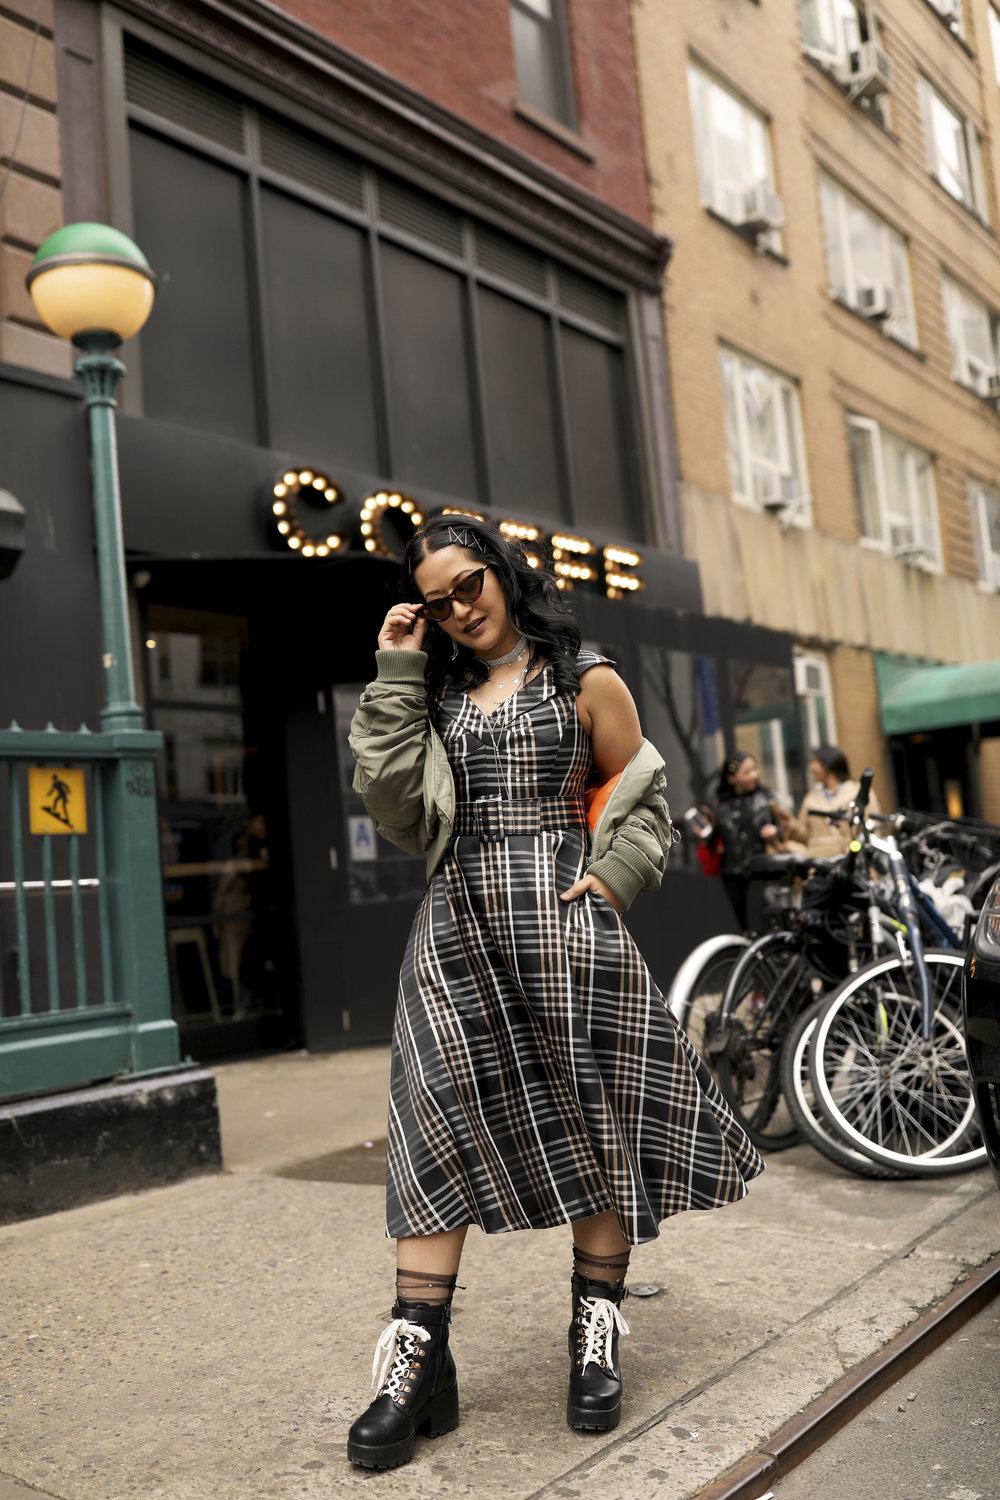 NYC Streetstyle - Mix a feminine dress with cool pieces